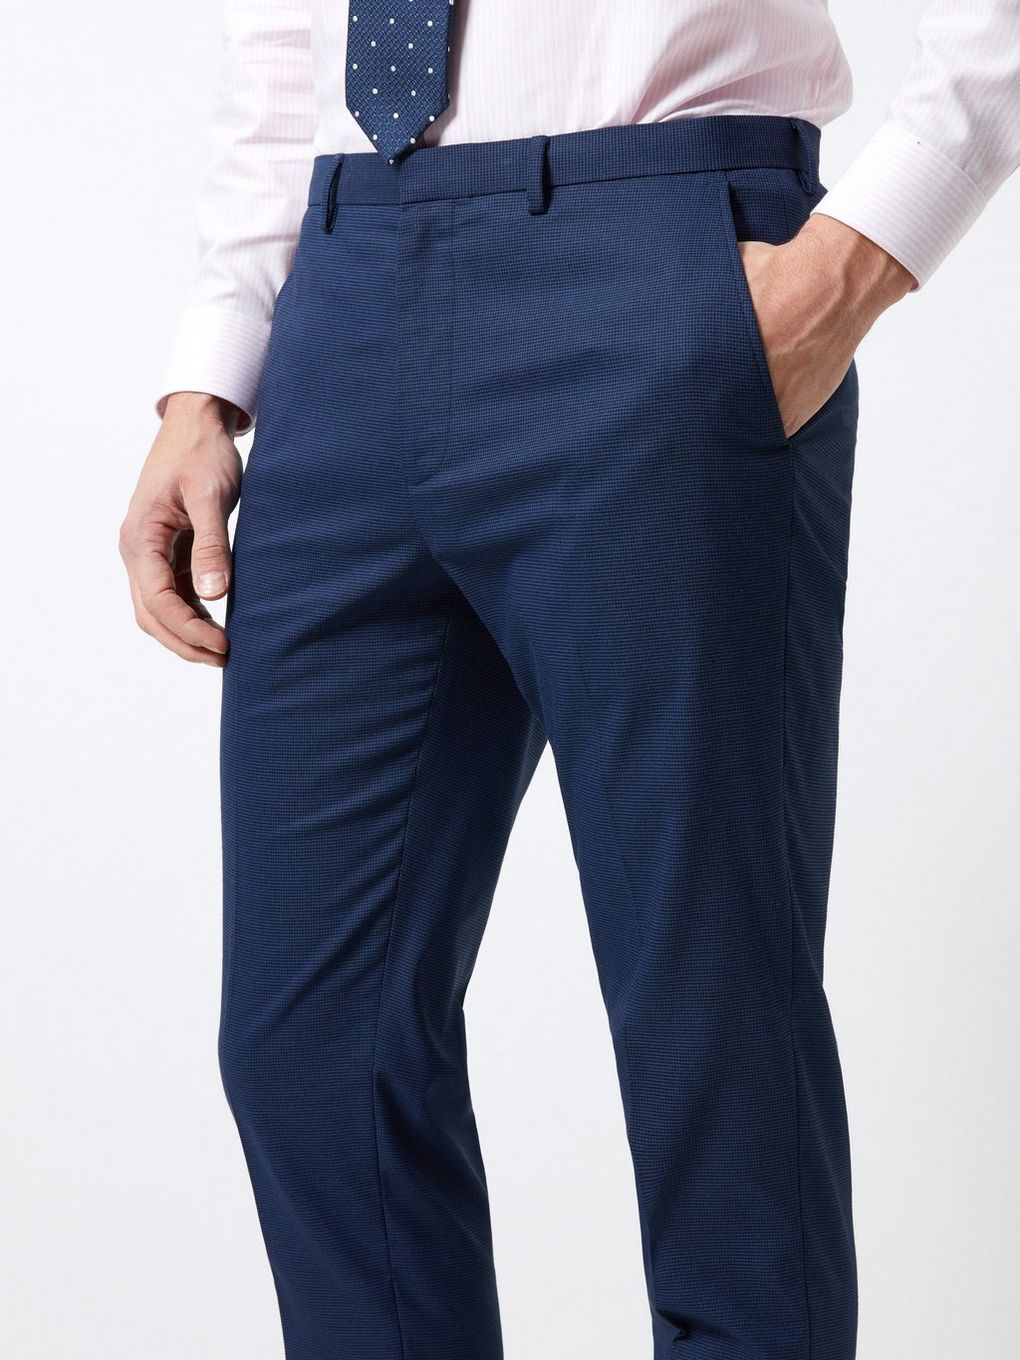 Combo BlackBird: The TrendSetter Pant- Set of 2 Trousers (Set Any Two Colours)